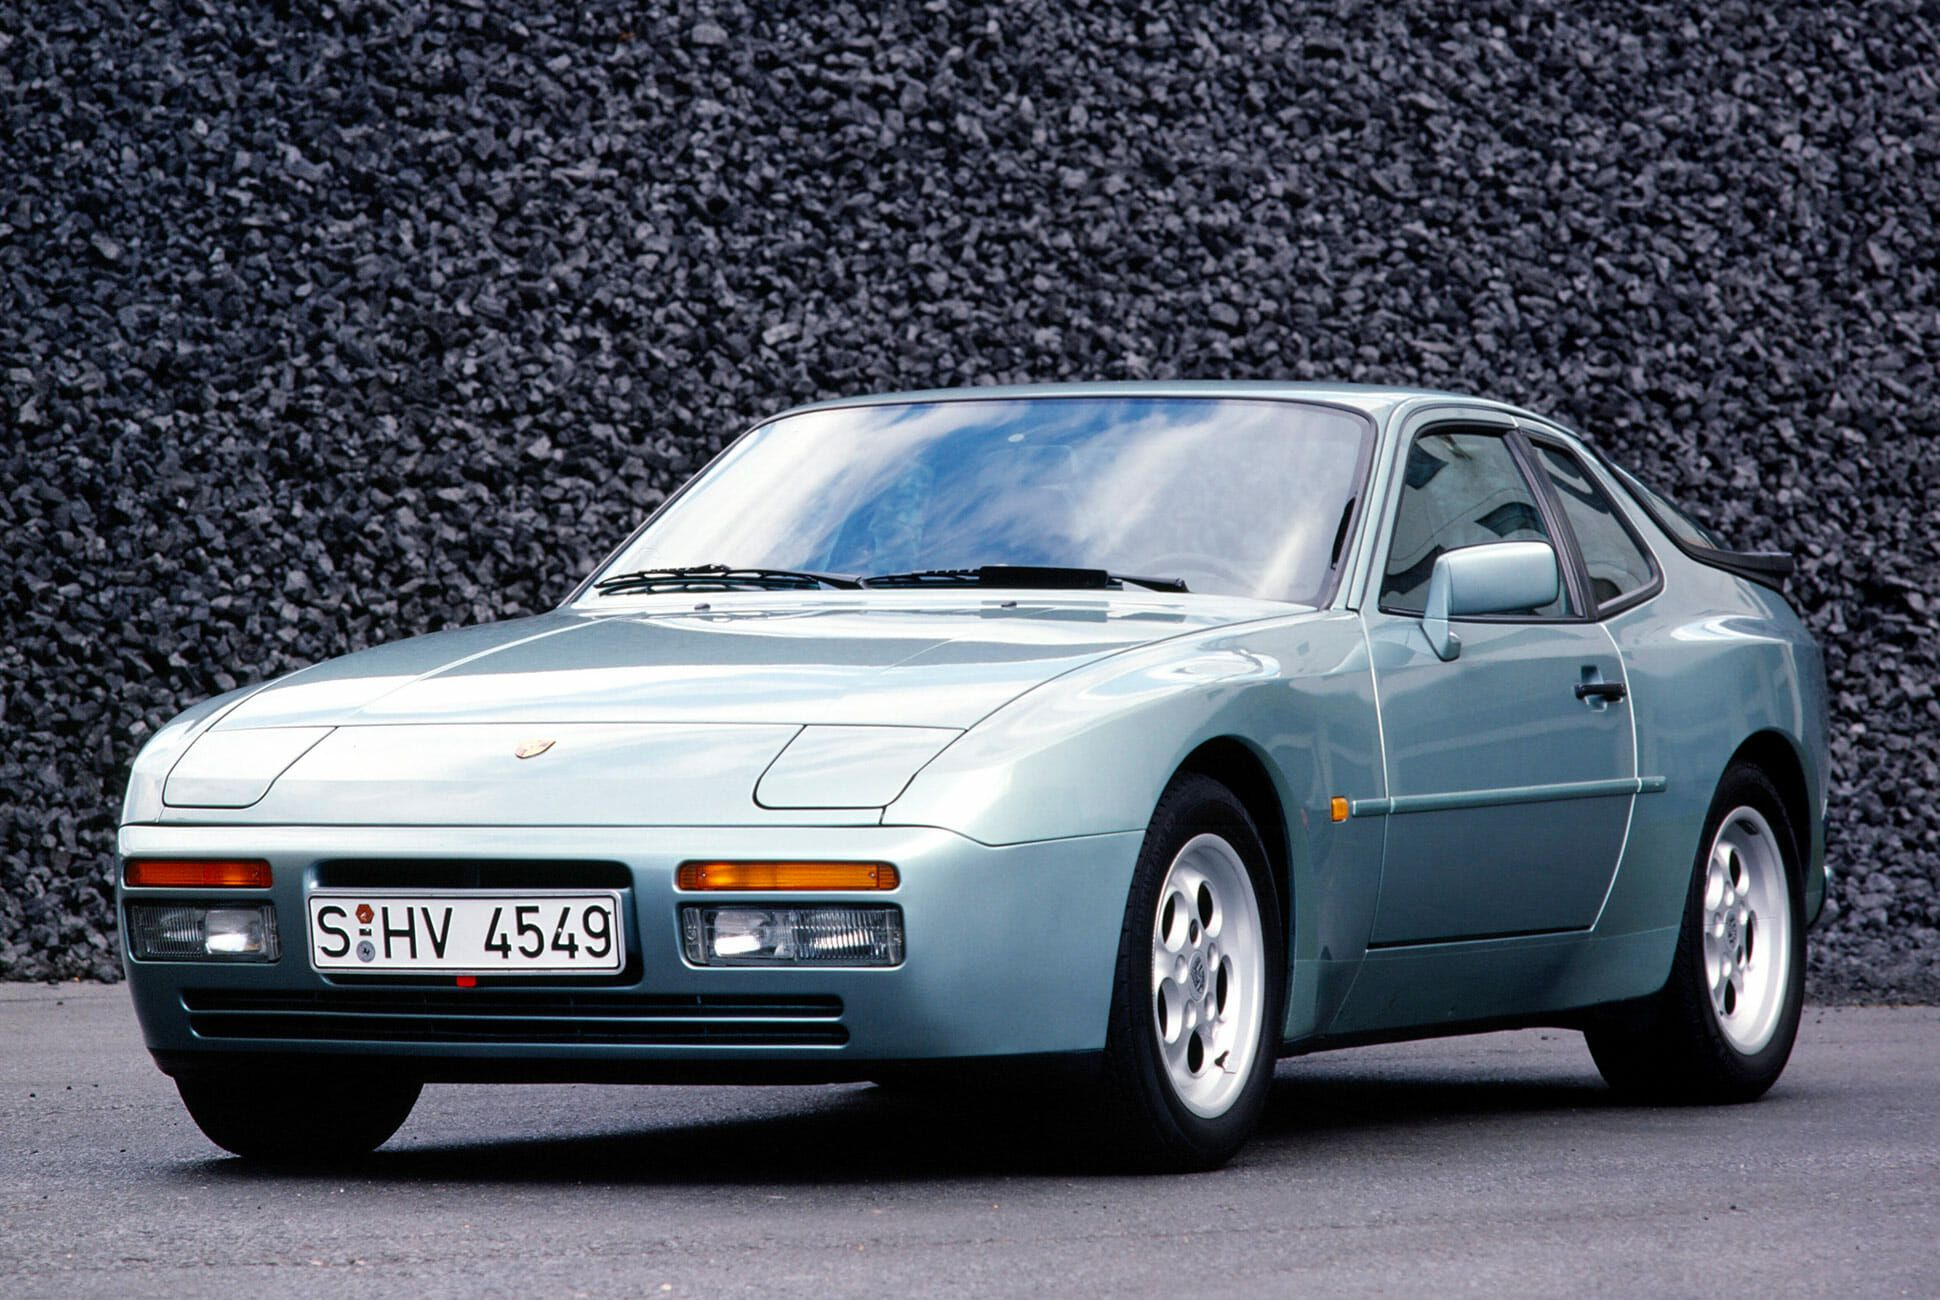 Porsche 944 Turbo Prices Are Getting Out Of Hand Gear Patrol